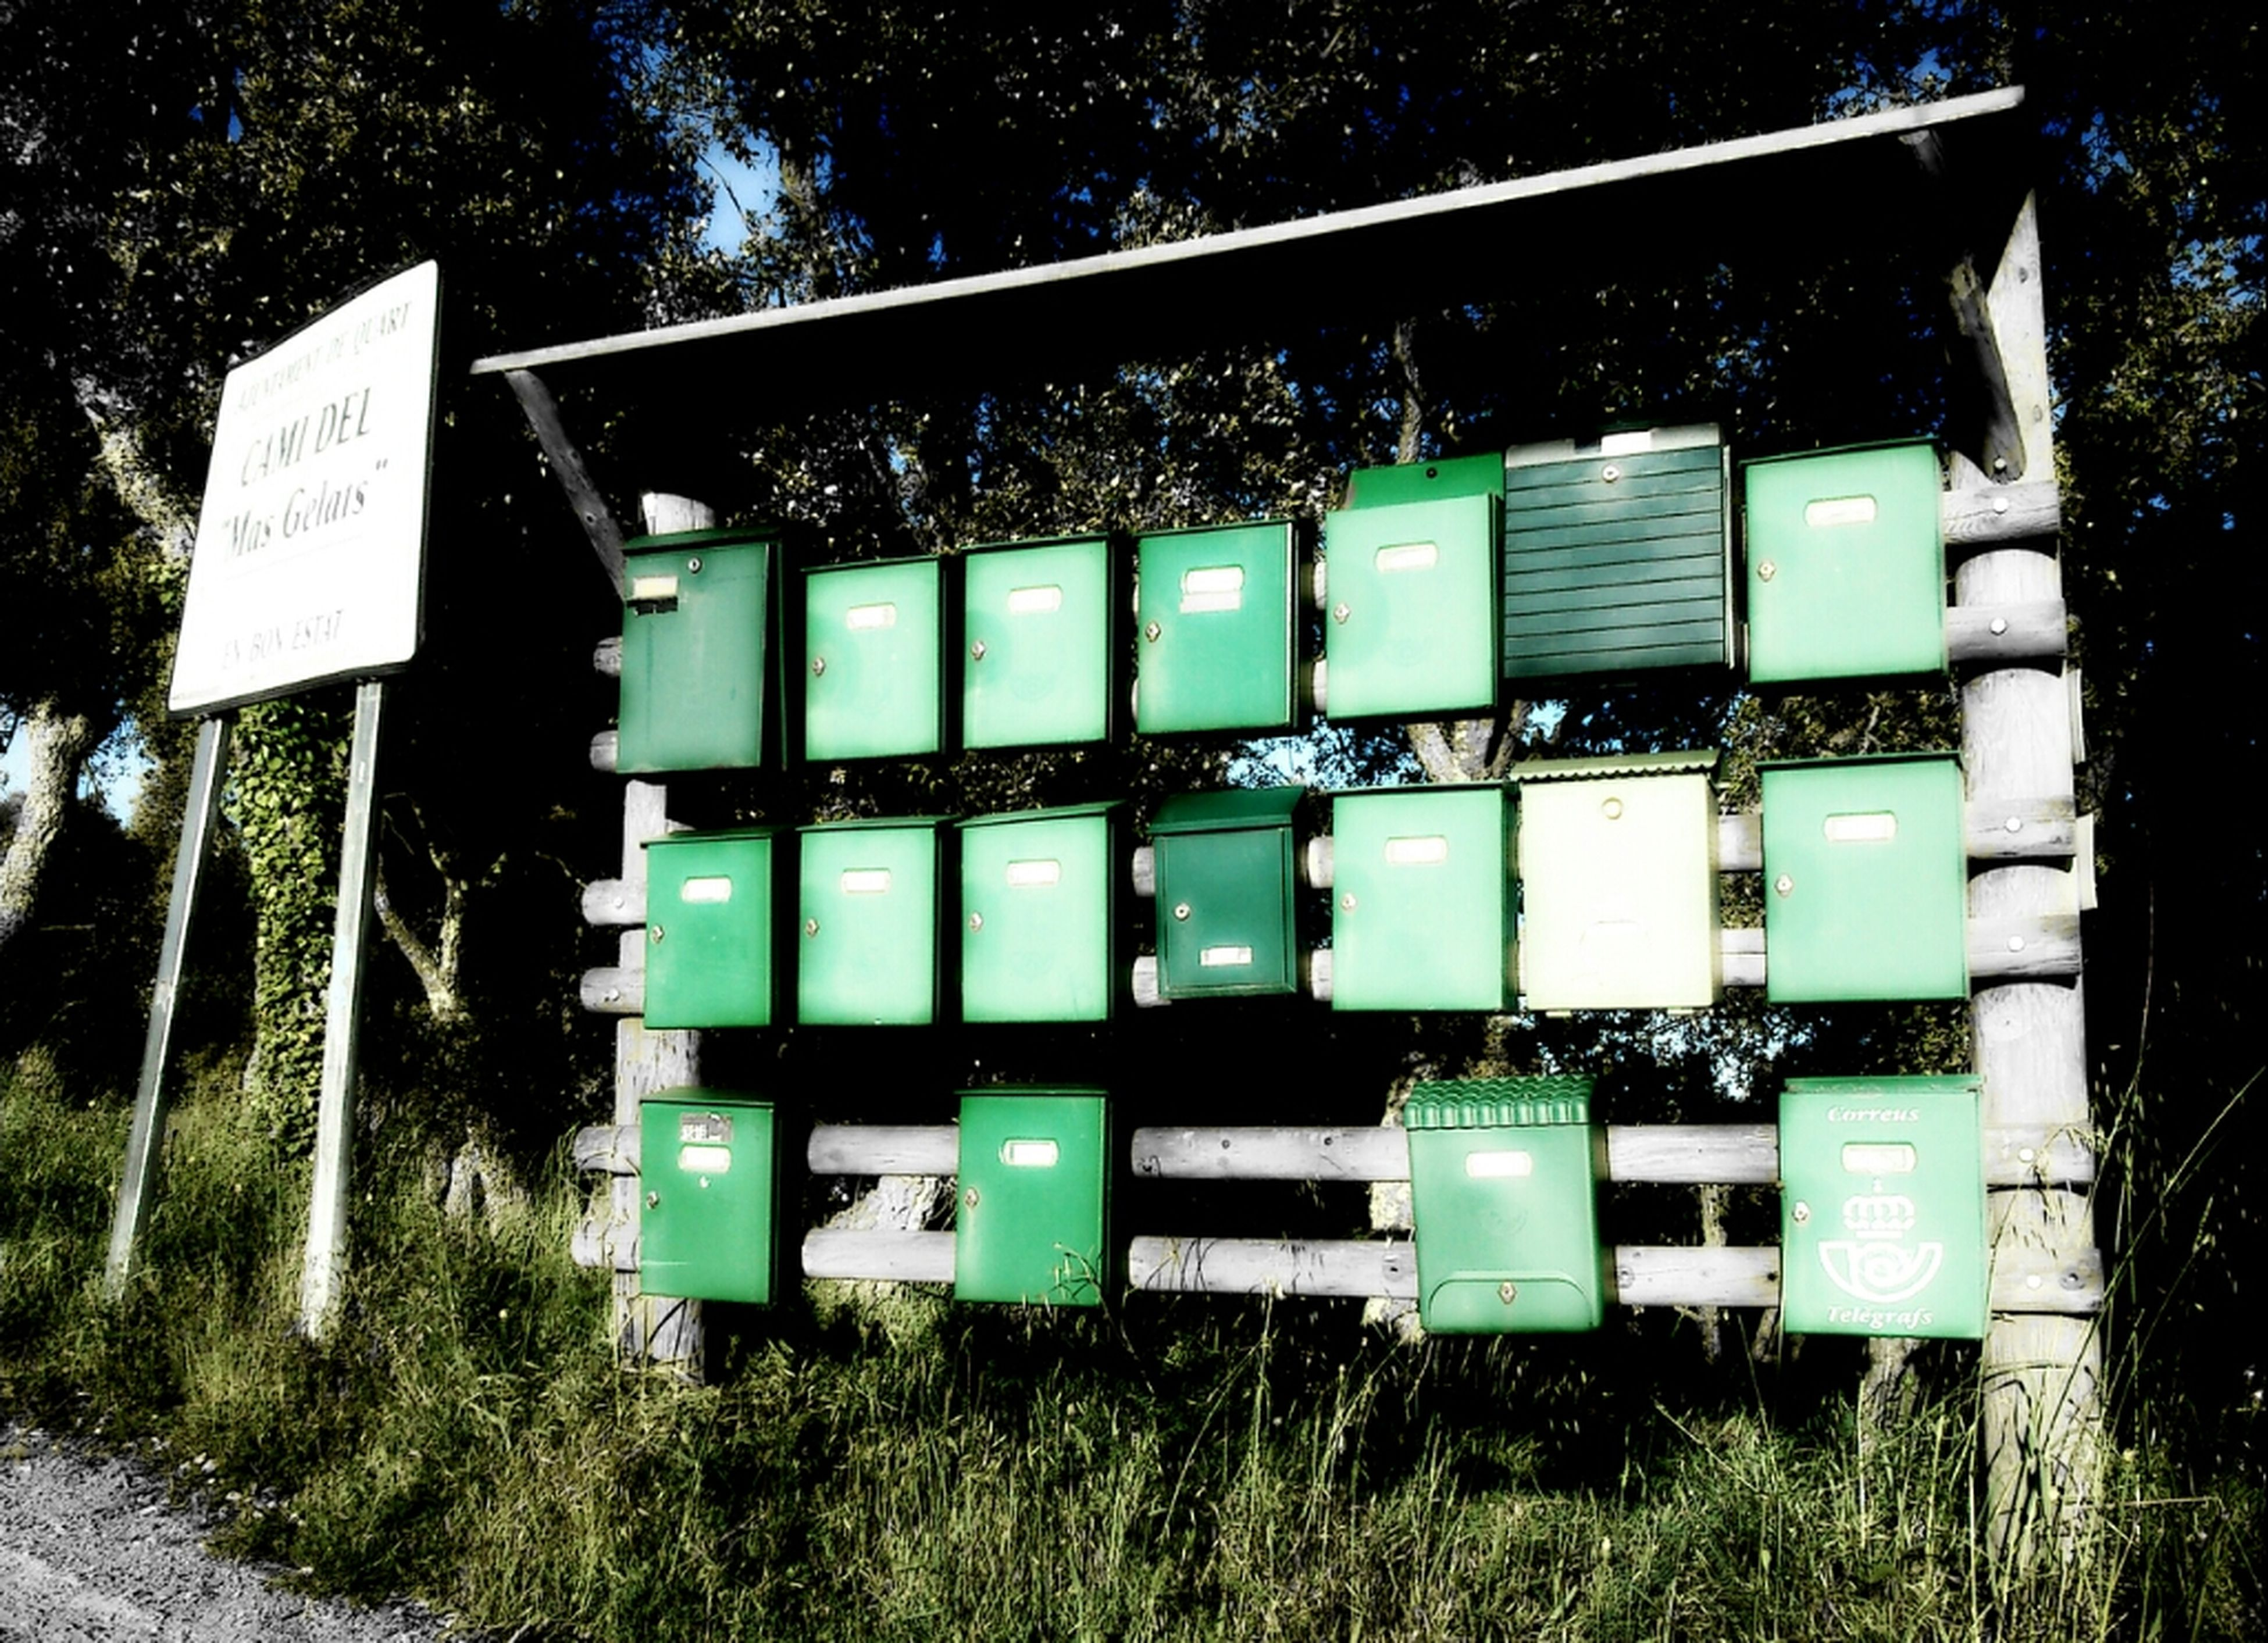 grass, building exterior, built structure, outdoors, architecture, day, no people, field, metal, green color, communication, in a row, western script, tree, text, variation, side by side, abandoned, large group of objects, container